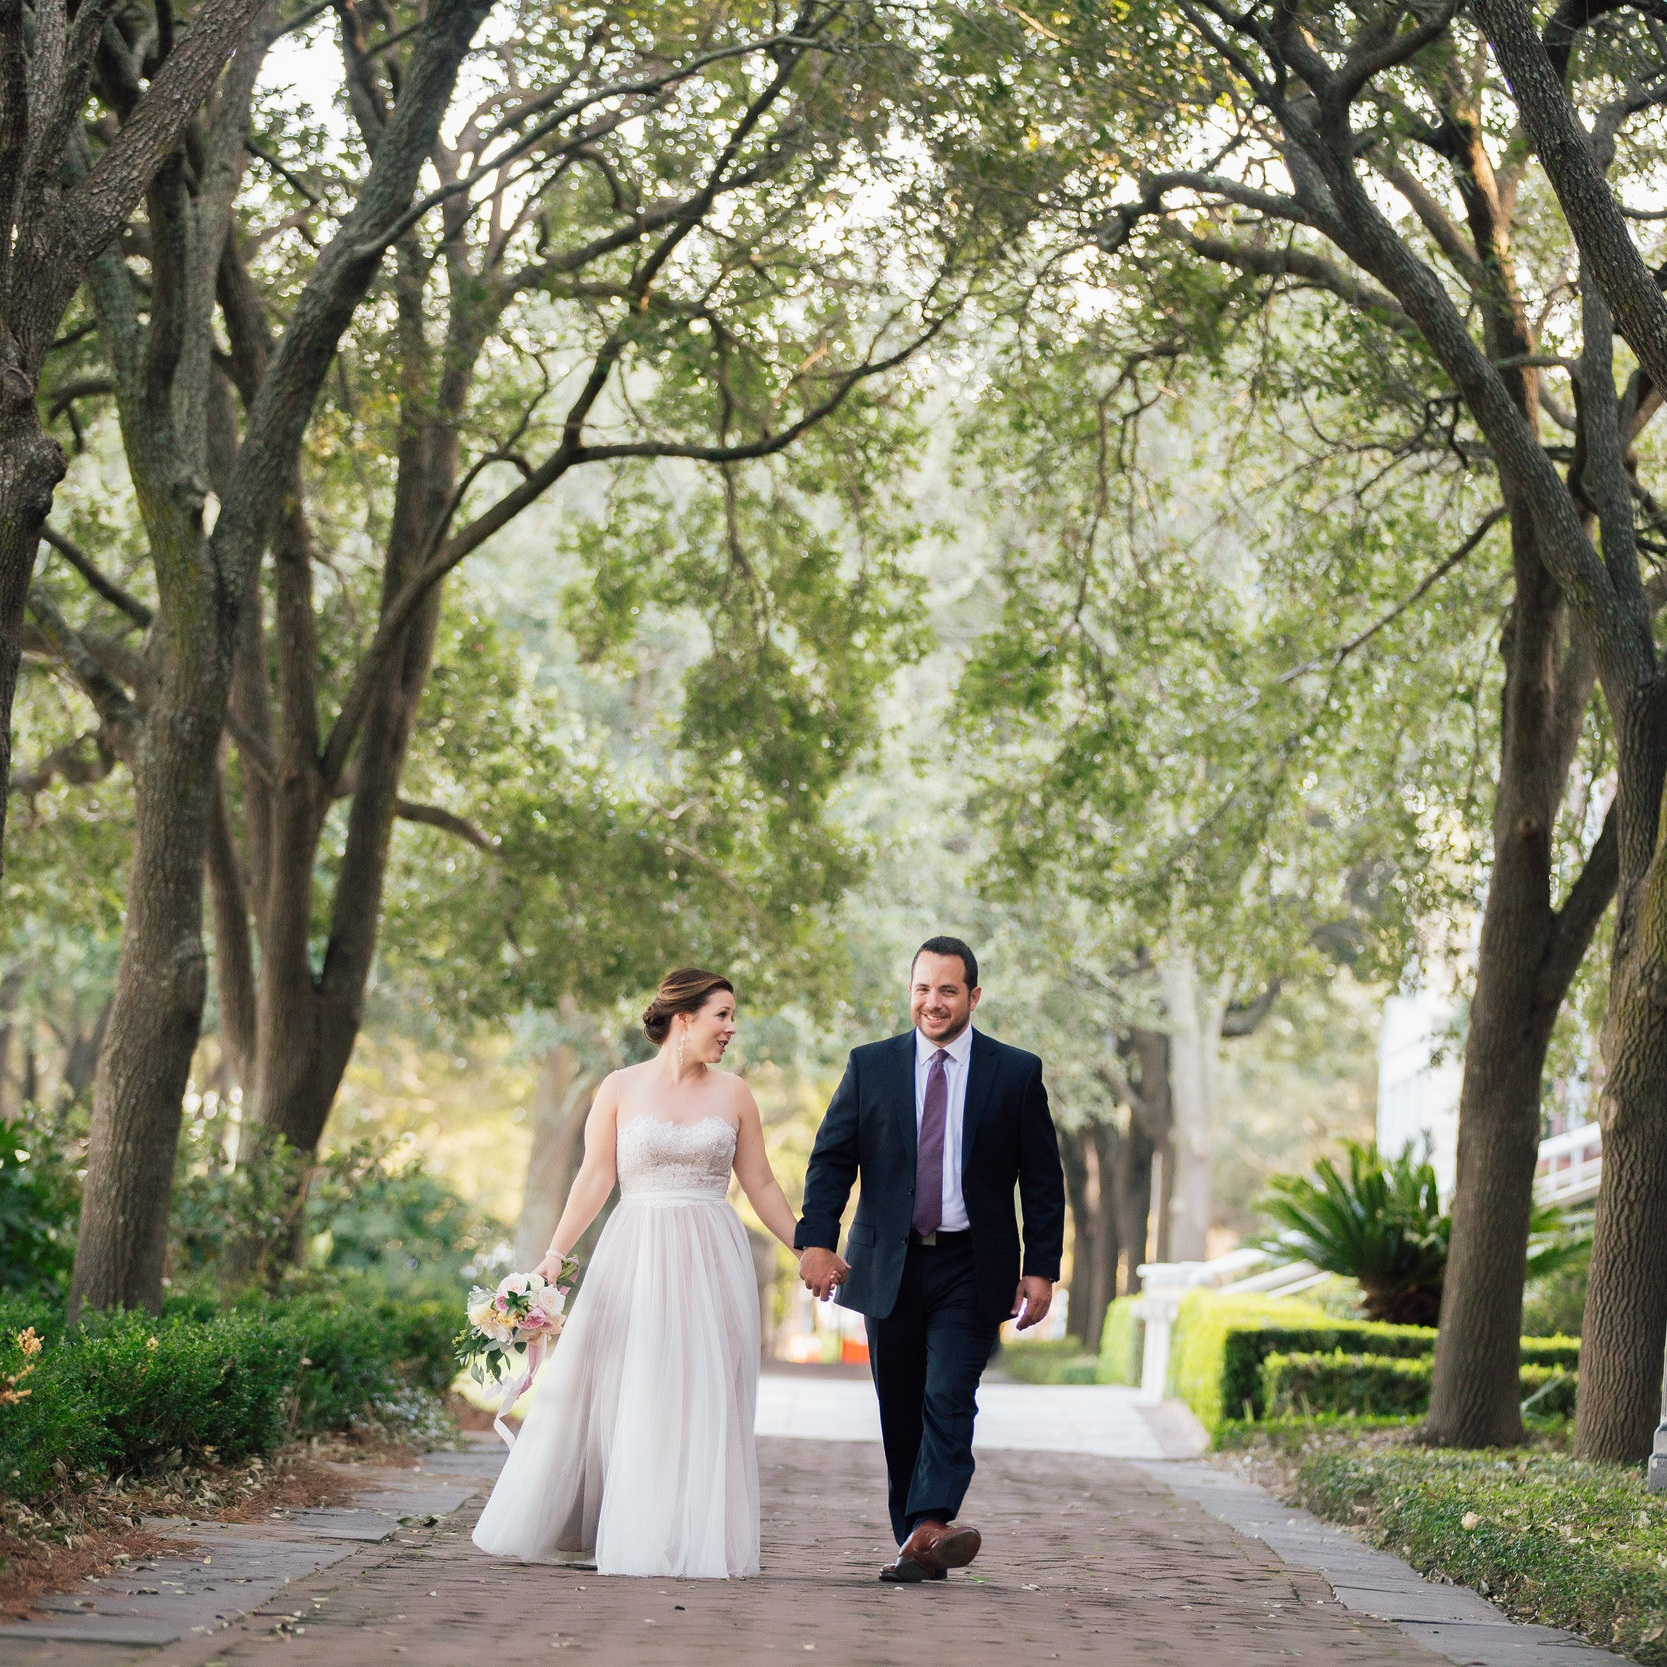 Lisa & Brent - The Parsonage